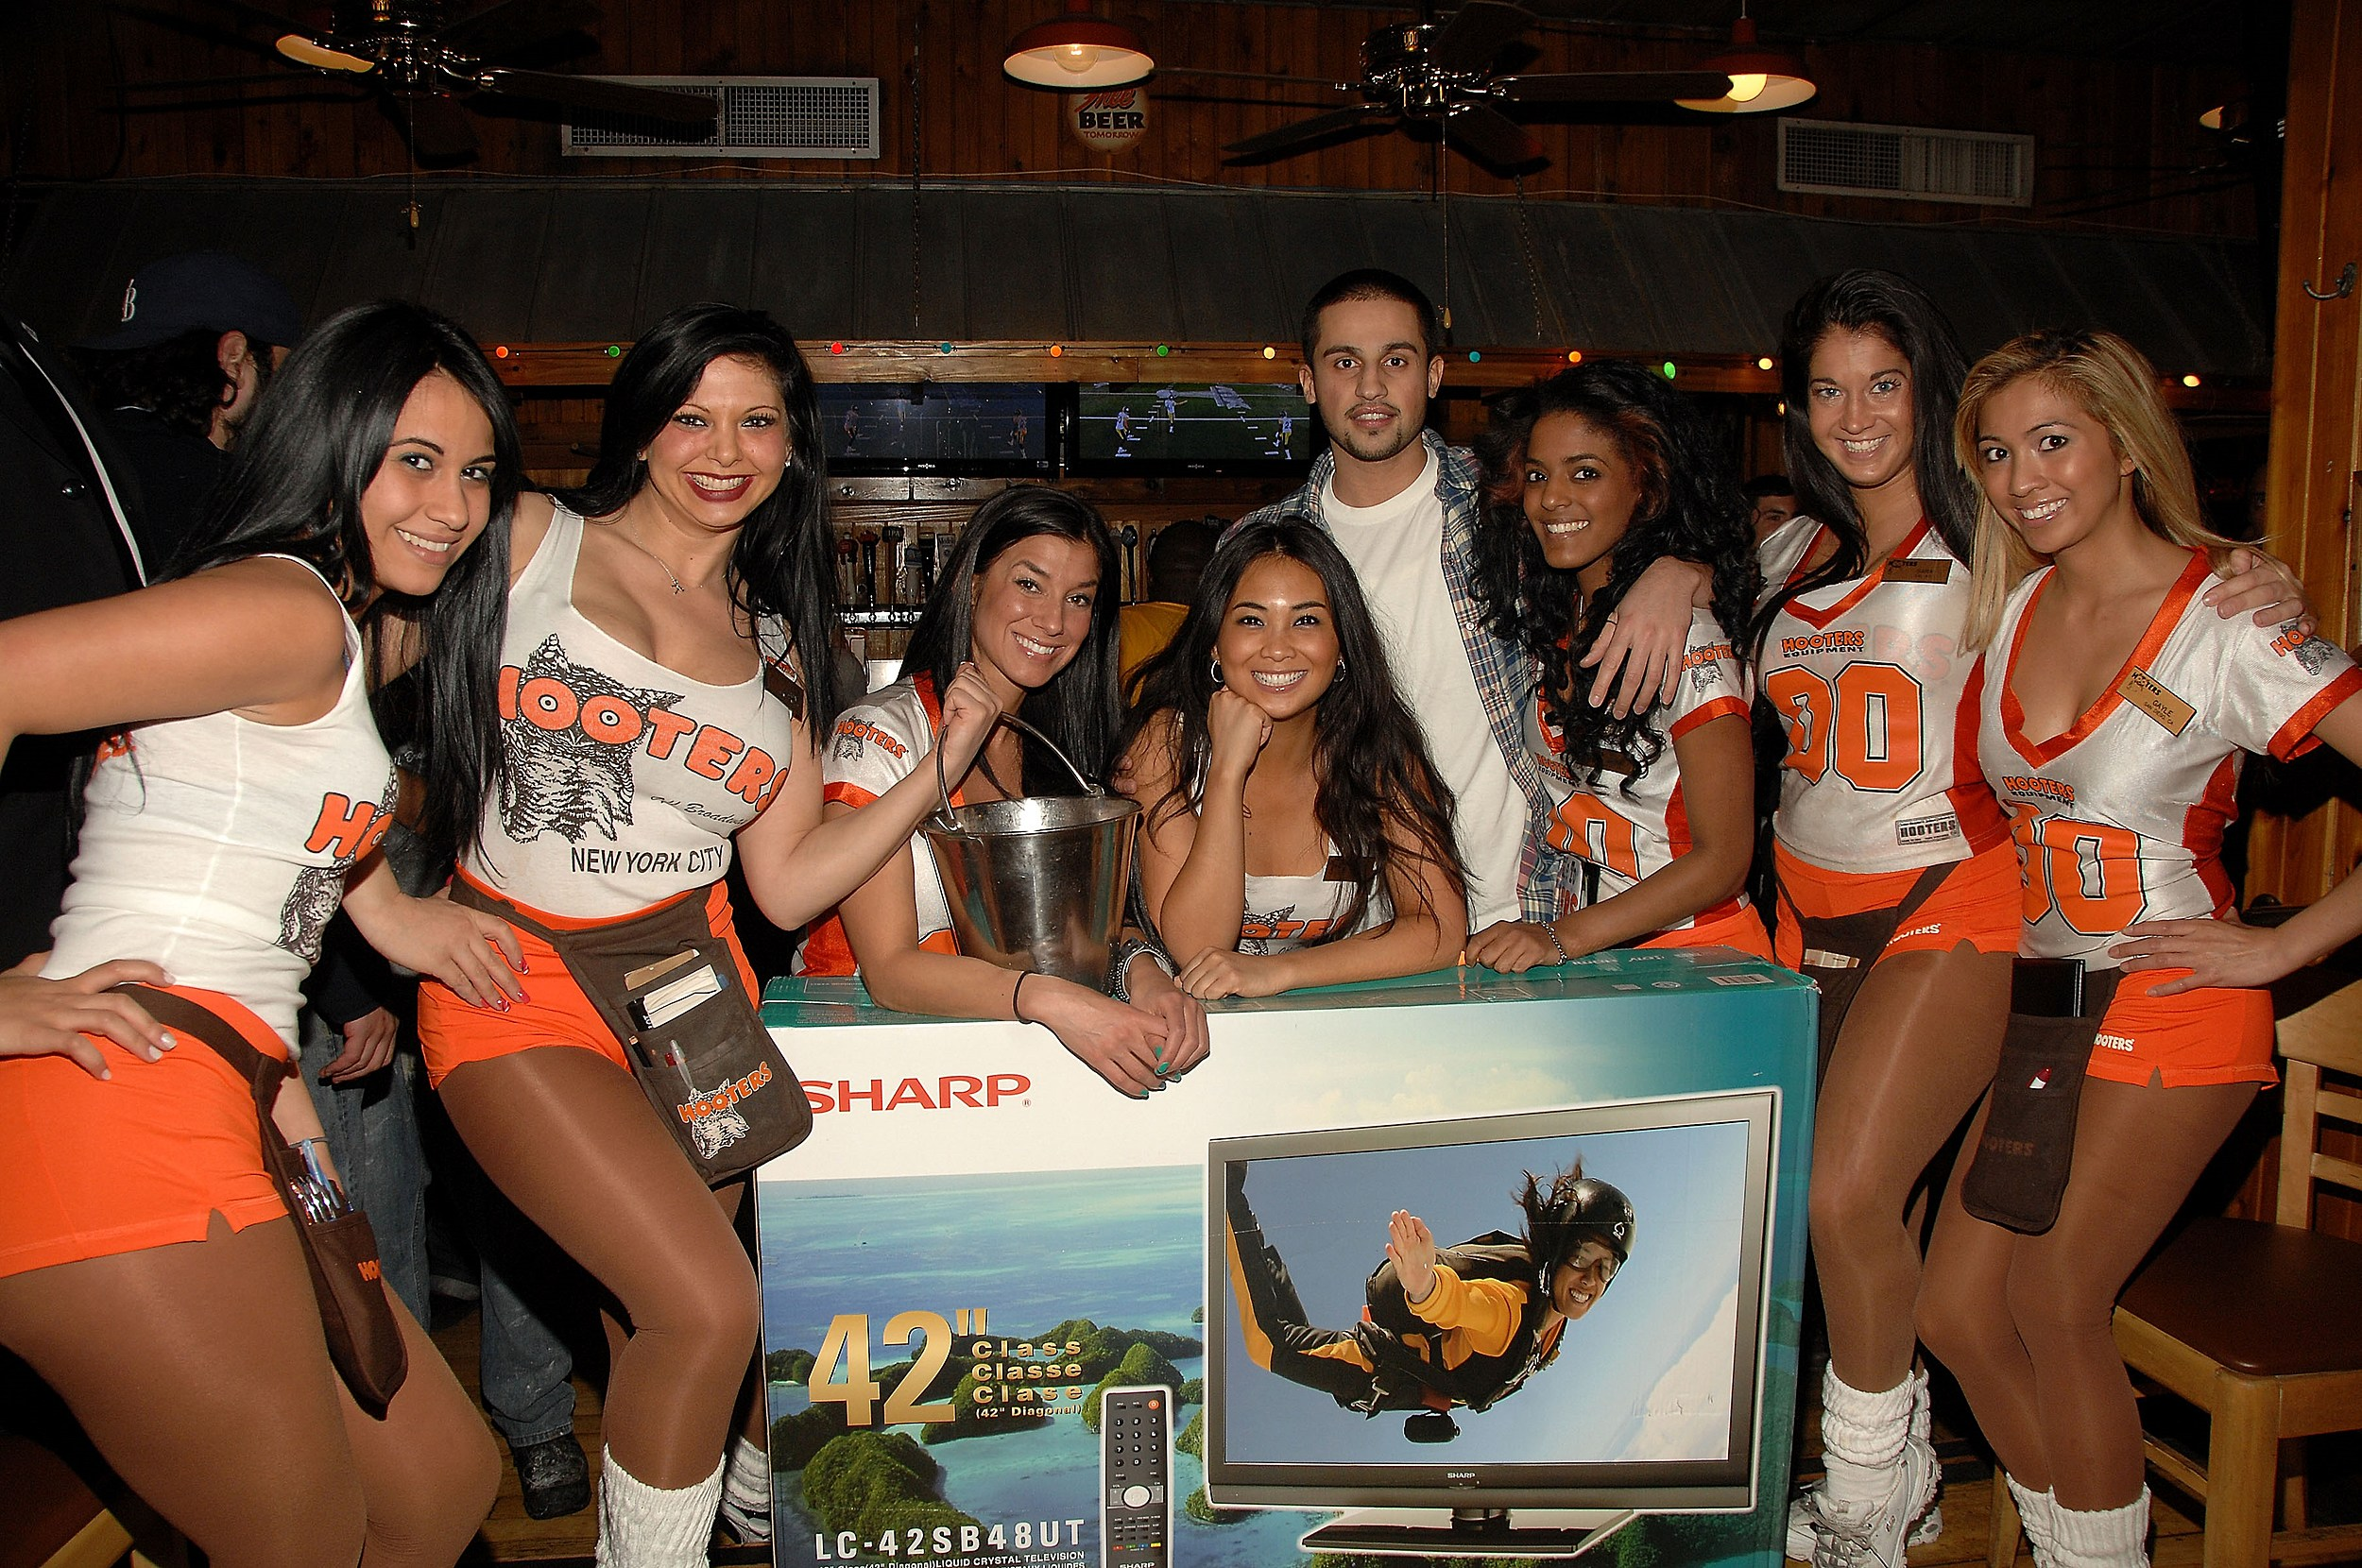 You Hot girls in hooters uniforms curious